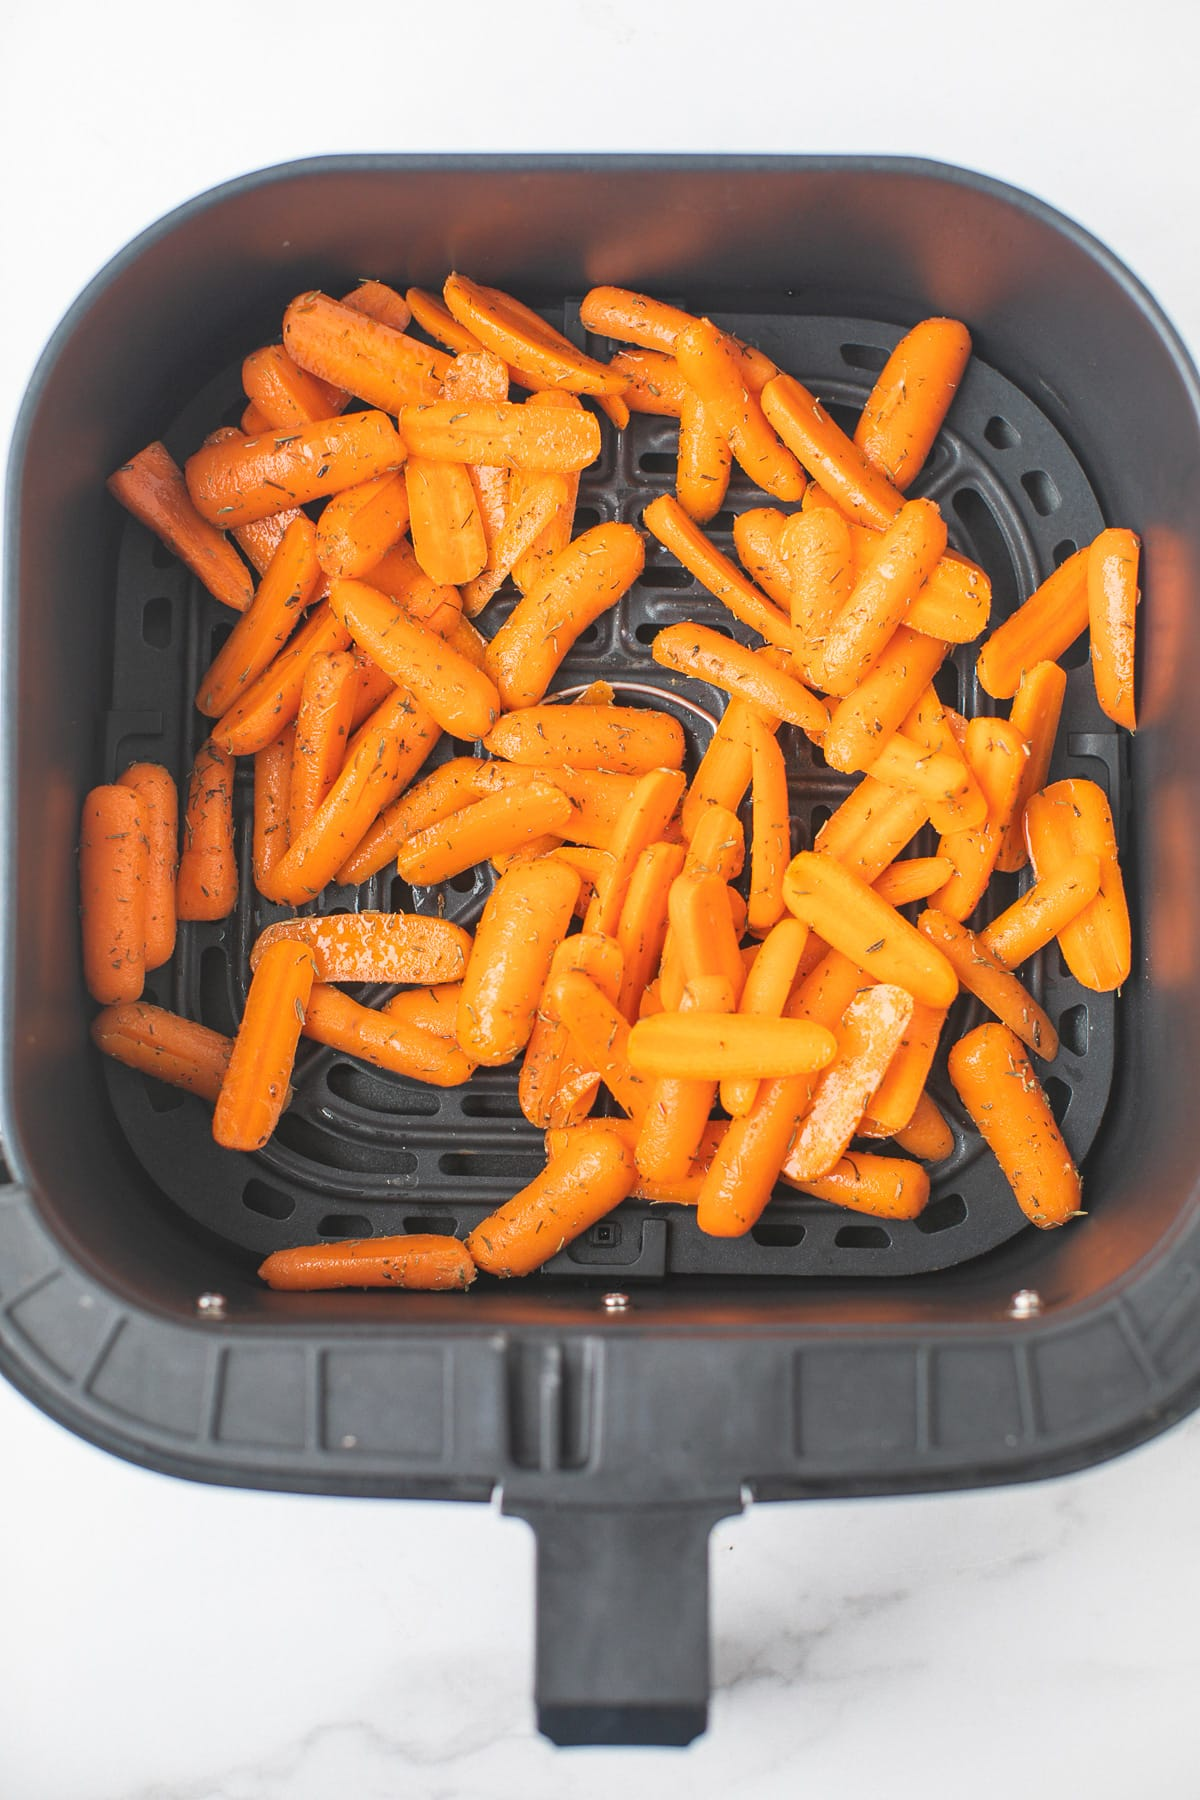 carrots cooking in an air fryer